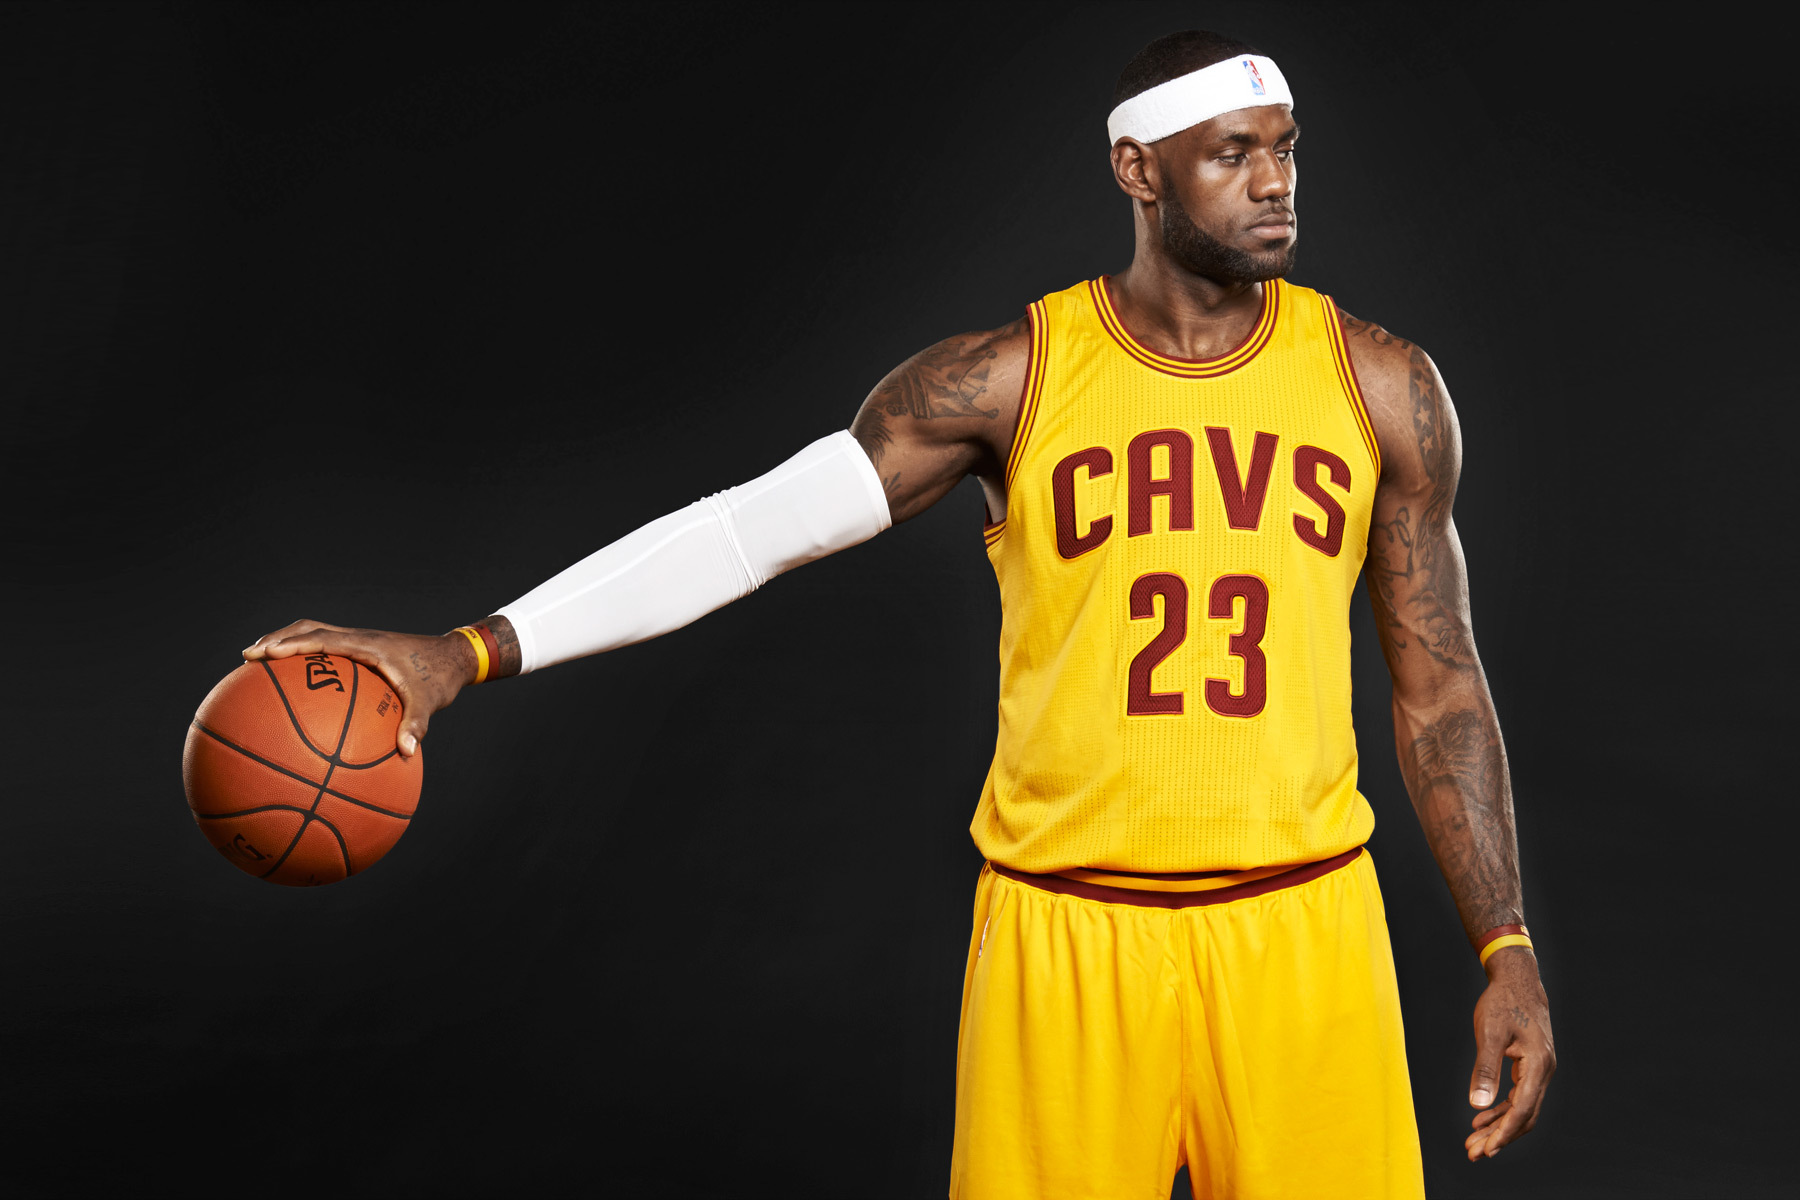 Lebron James Wallpaper And Background Image 1800x1200 Id 782679 Wallpaper Abyss